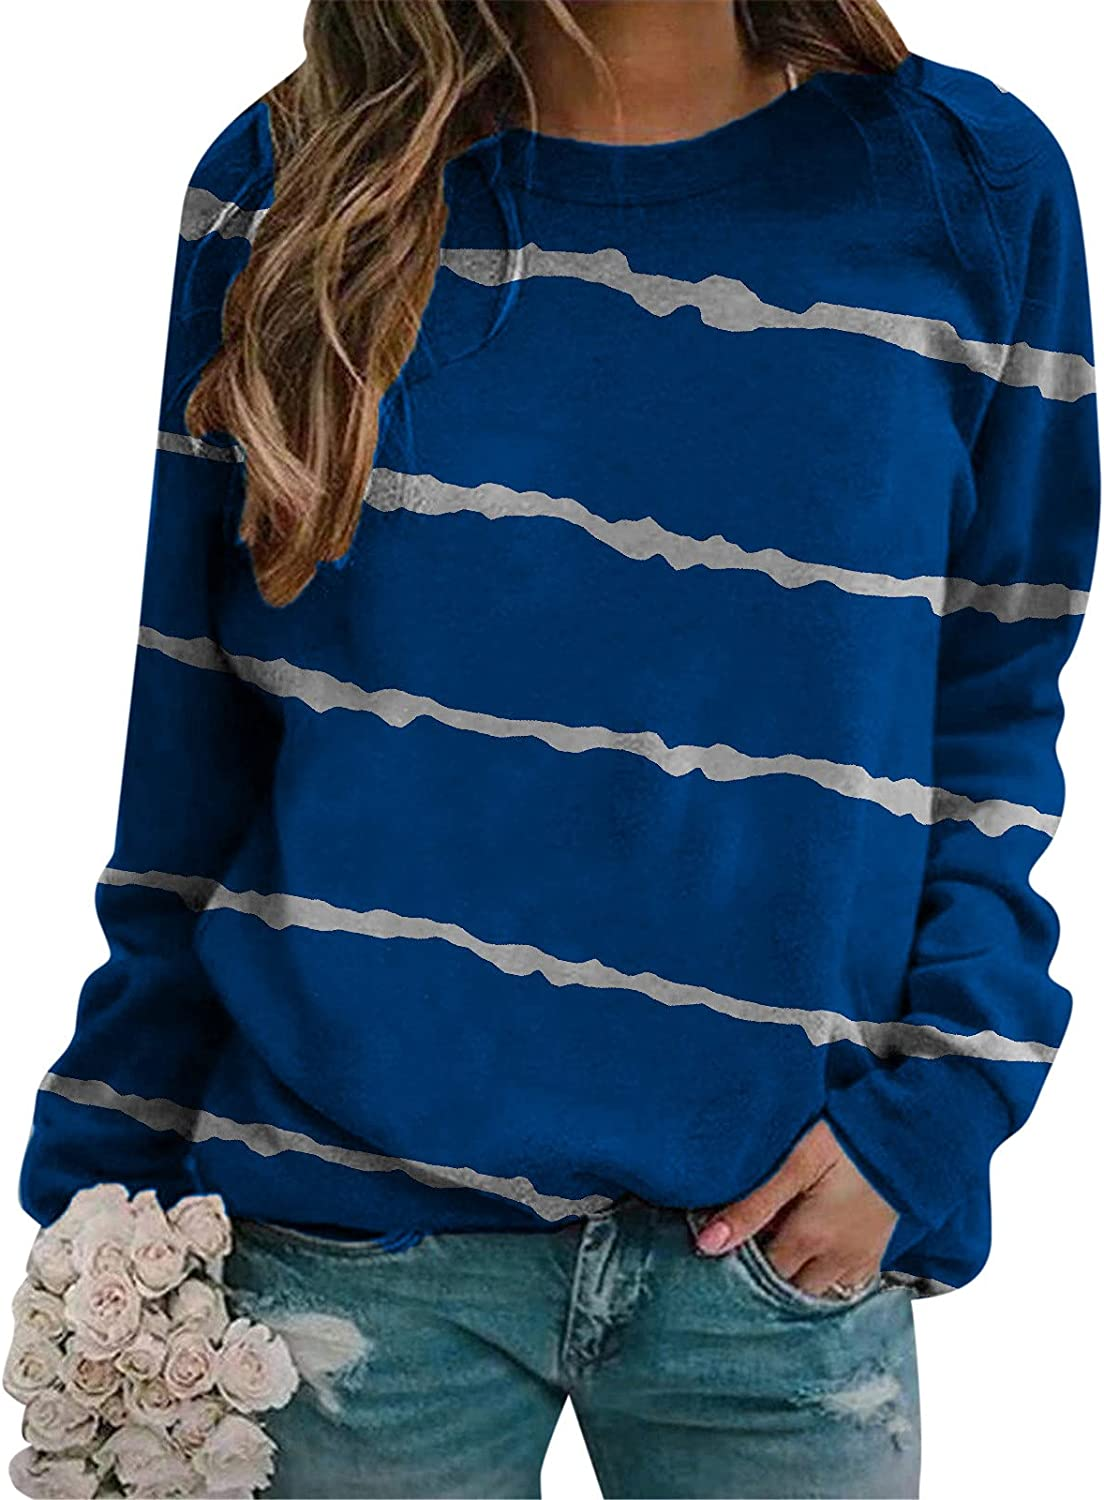 UOCUFY Long Sleeve Shirts for Womens, Womens Tops Casual Crewneck Long Sleeve Blouse Gradient Color Block Sweatshirt